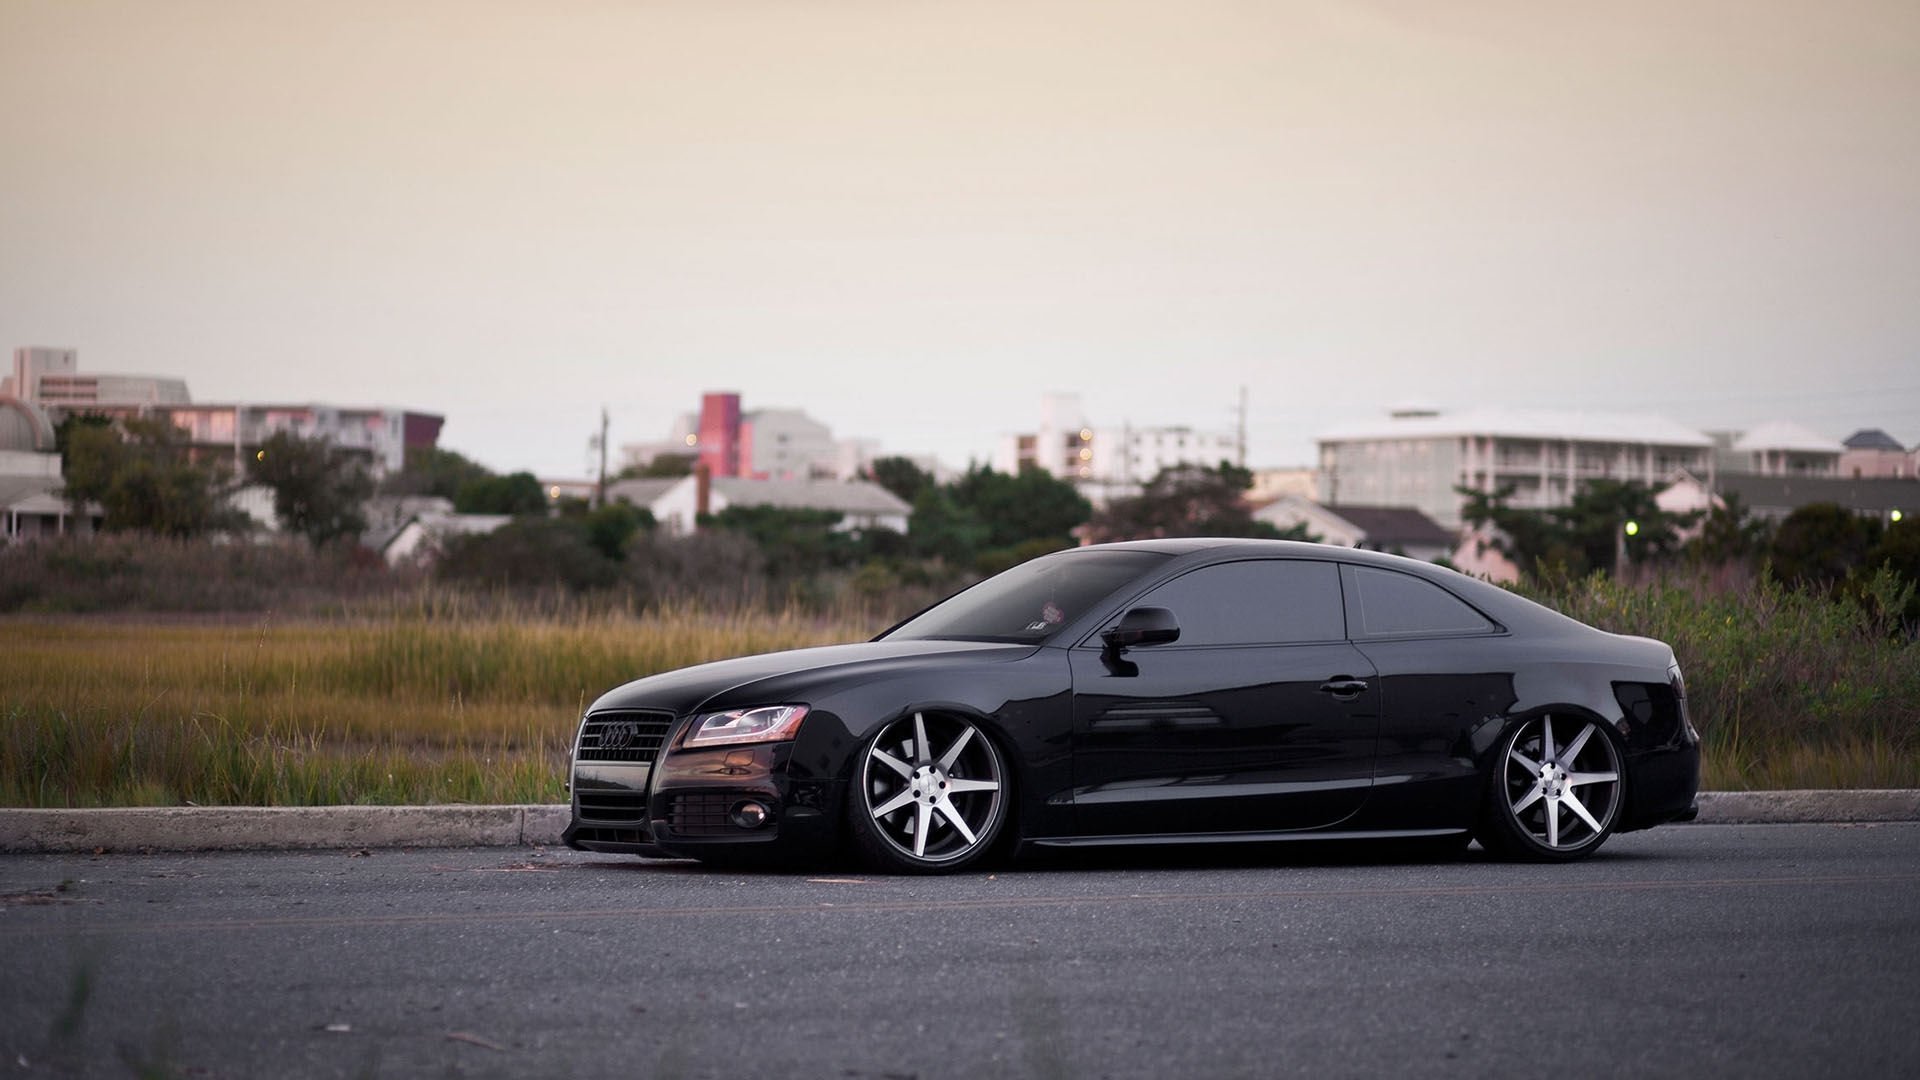 Car of the day – 2009 Audi S5 Accuair on 20 inches Vossen wheels 1920×1080 HD